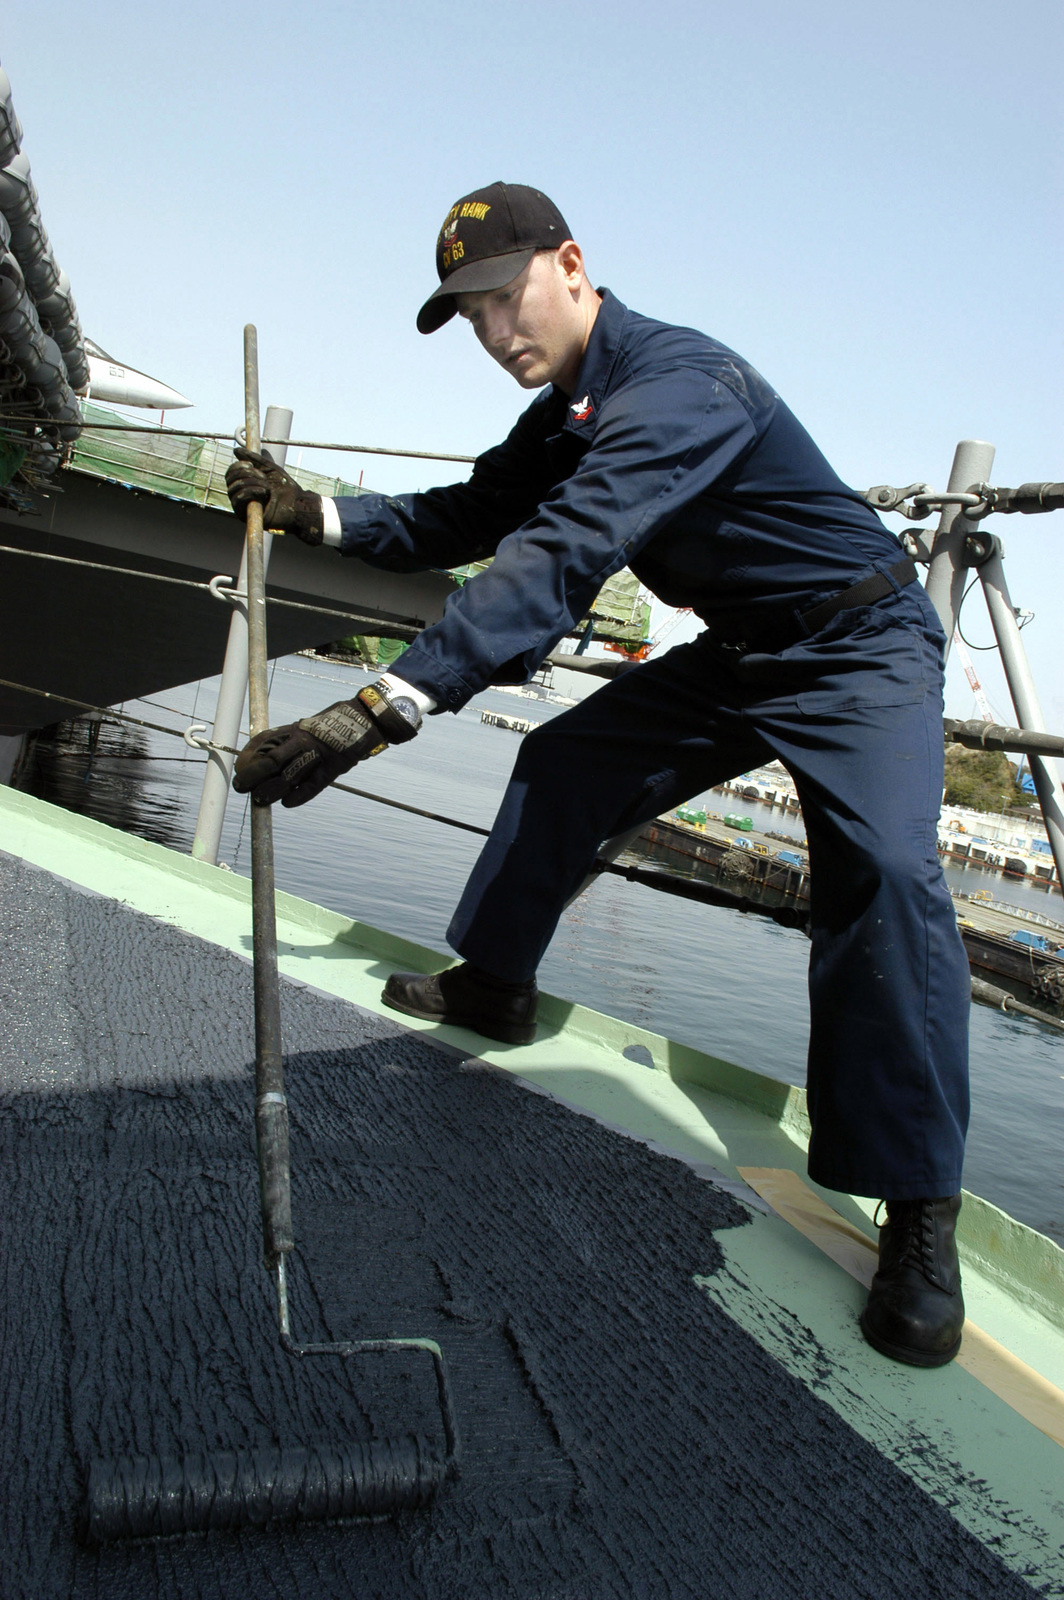 Onboard the flight deck of the US Navy (USN) Aircraft Carrier, USS KITTY HAWK (CV 63), Fire Control Technician Second Class (FT2) Justin Bogges, applies non-skid paint to the deck supporting a Rolling Airframe Missile (RAM) mount. The KITTY HAWK is currently in port at Yokosuka, Japan, conducting repairs during a restricted availability period